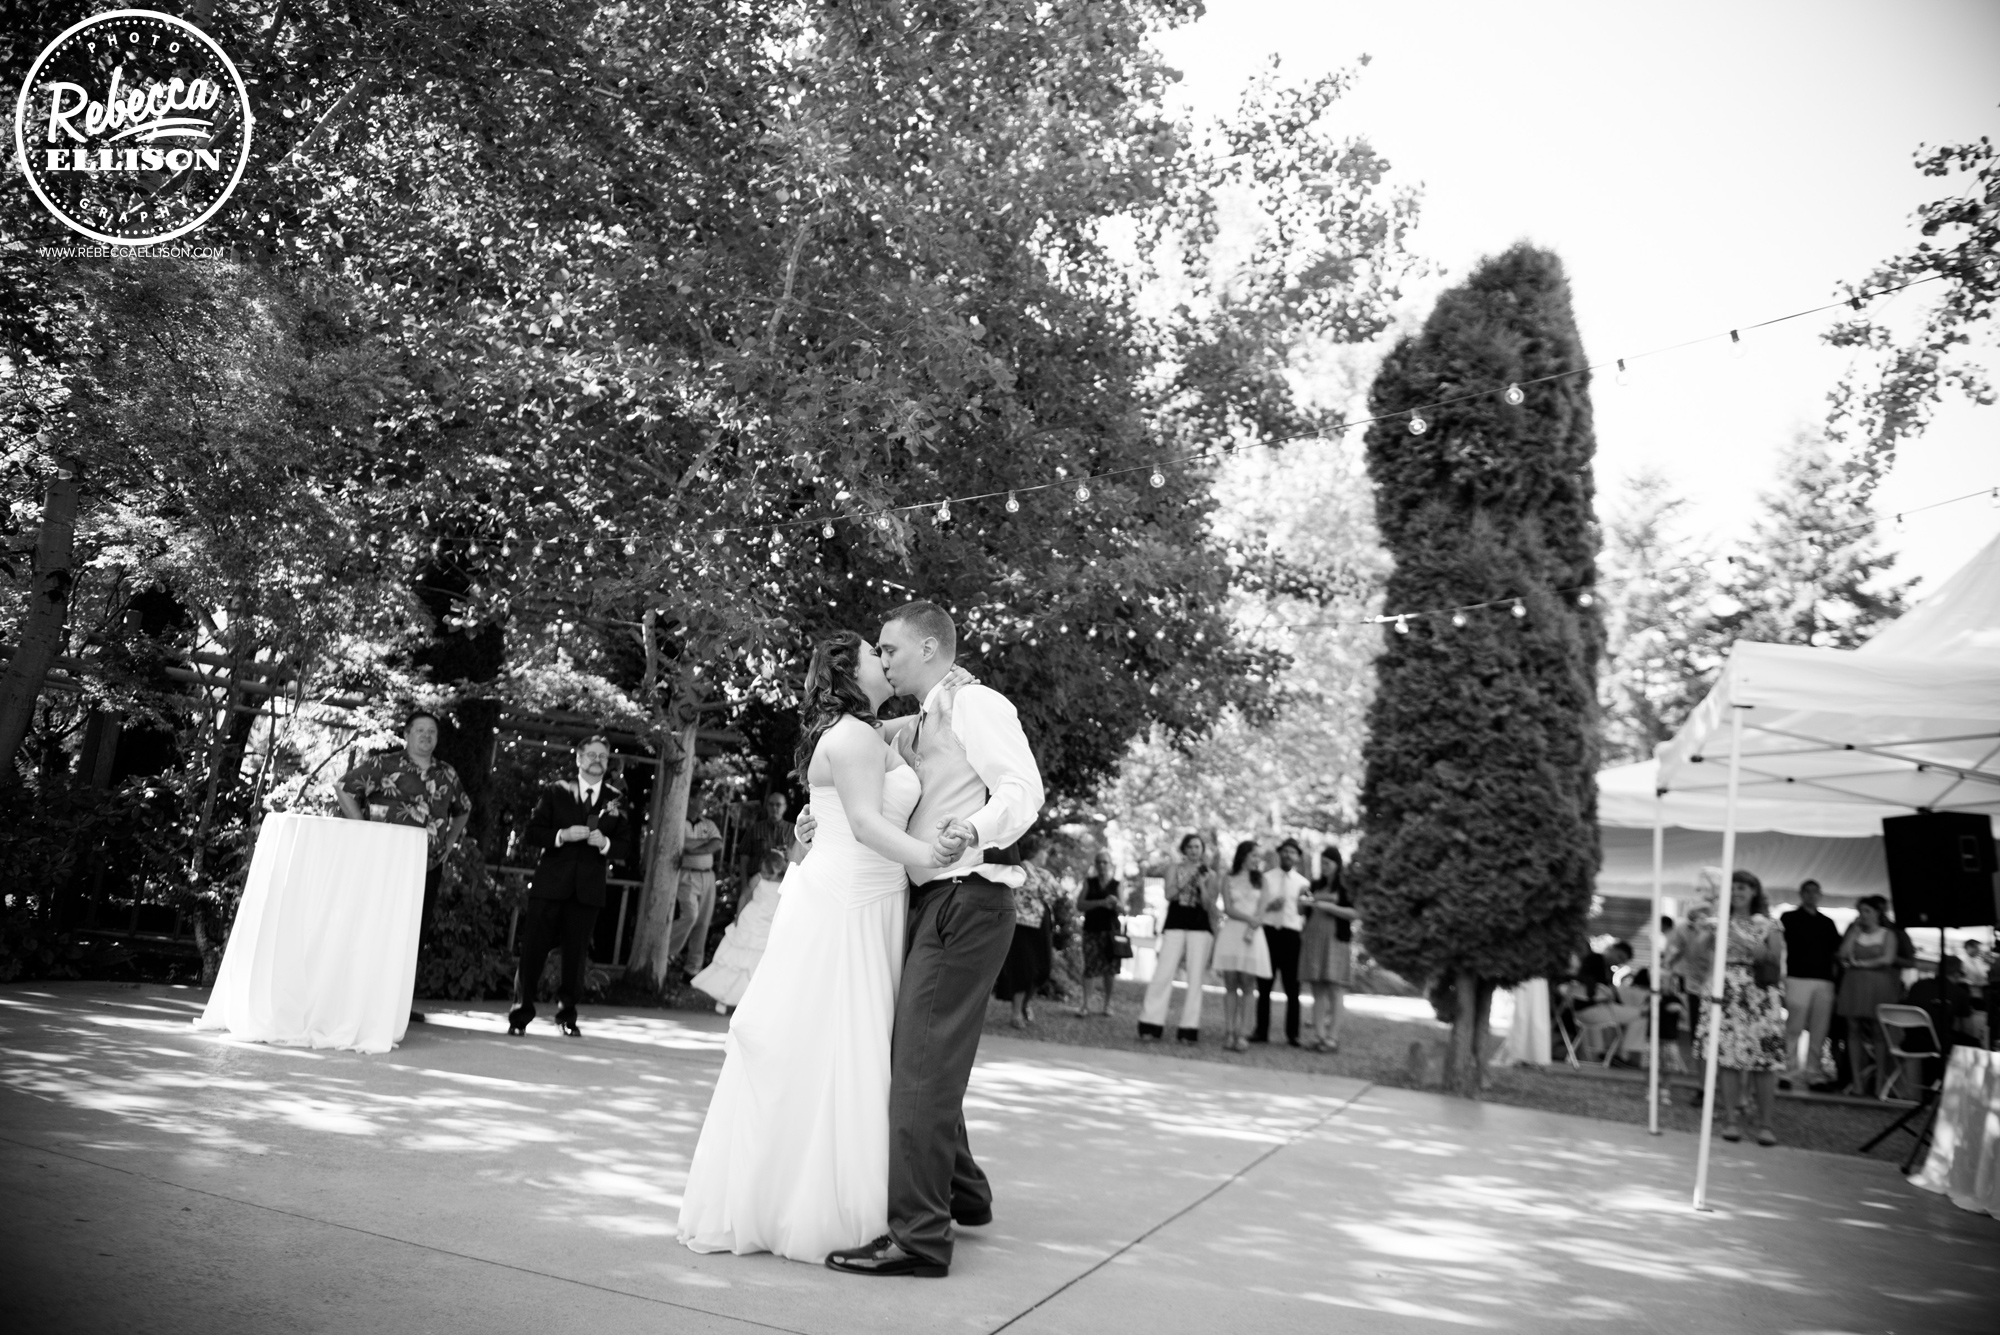 Bride and groom dance at their outdoor wedding featuring a white strapless wedding dress and hanging lights photographed by Seattle wedding photographer Rebecca Ellison